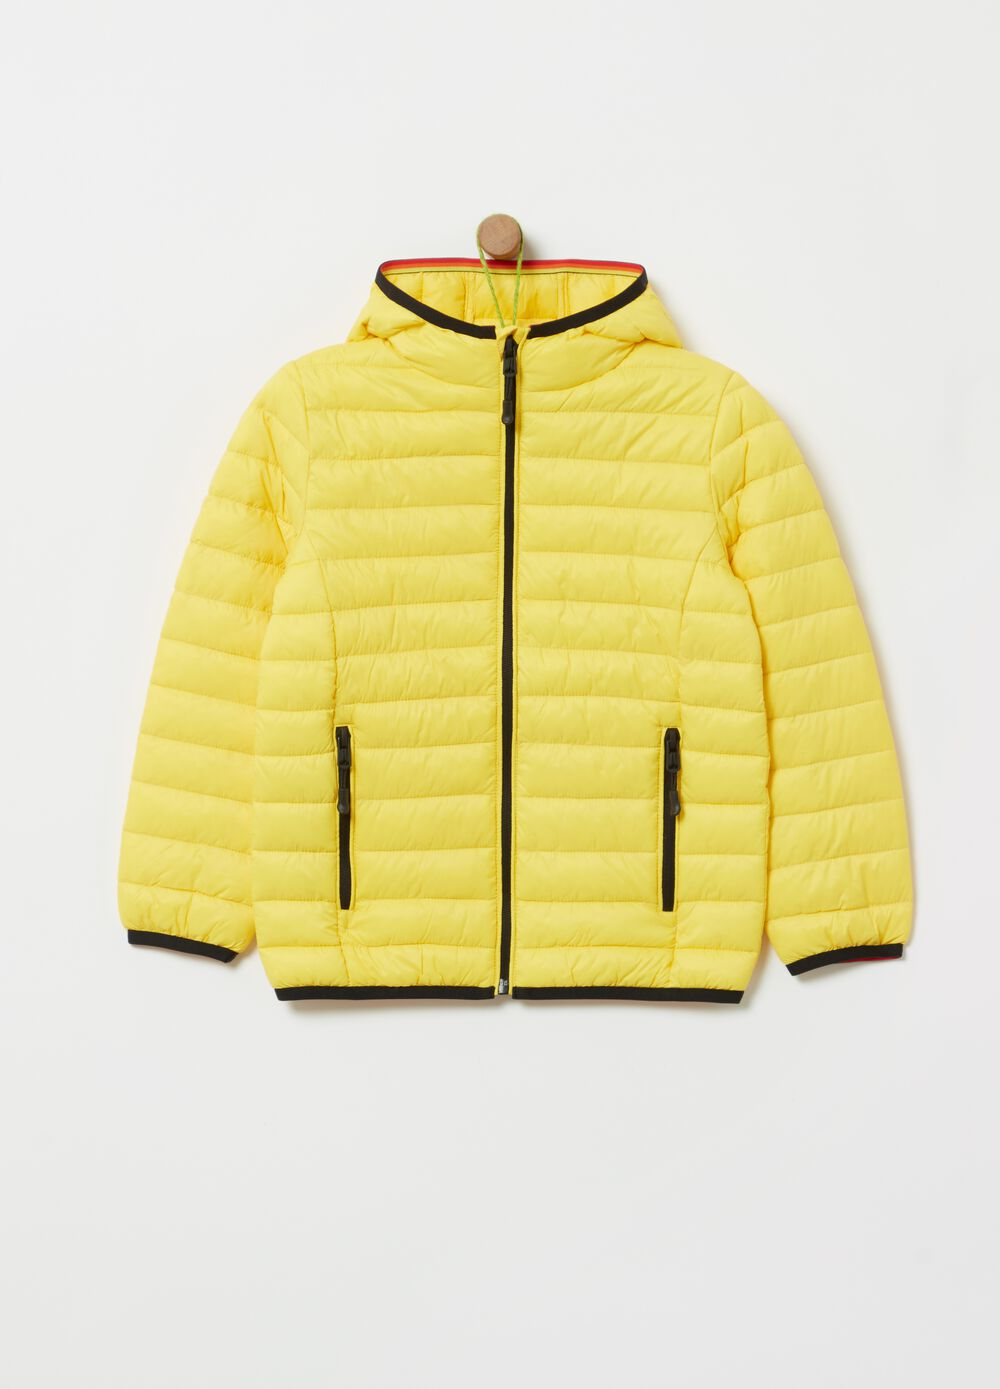 Ultra light quilted jacket with pockets